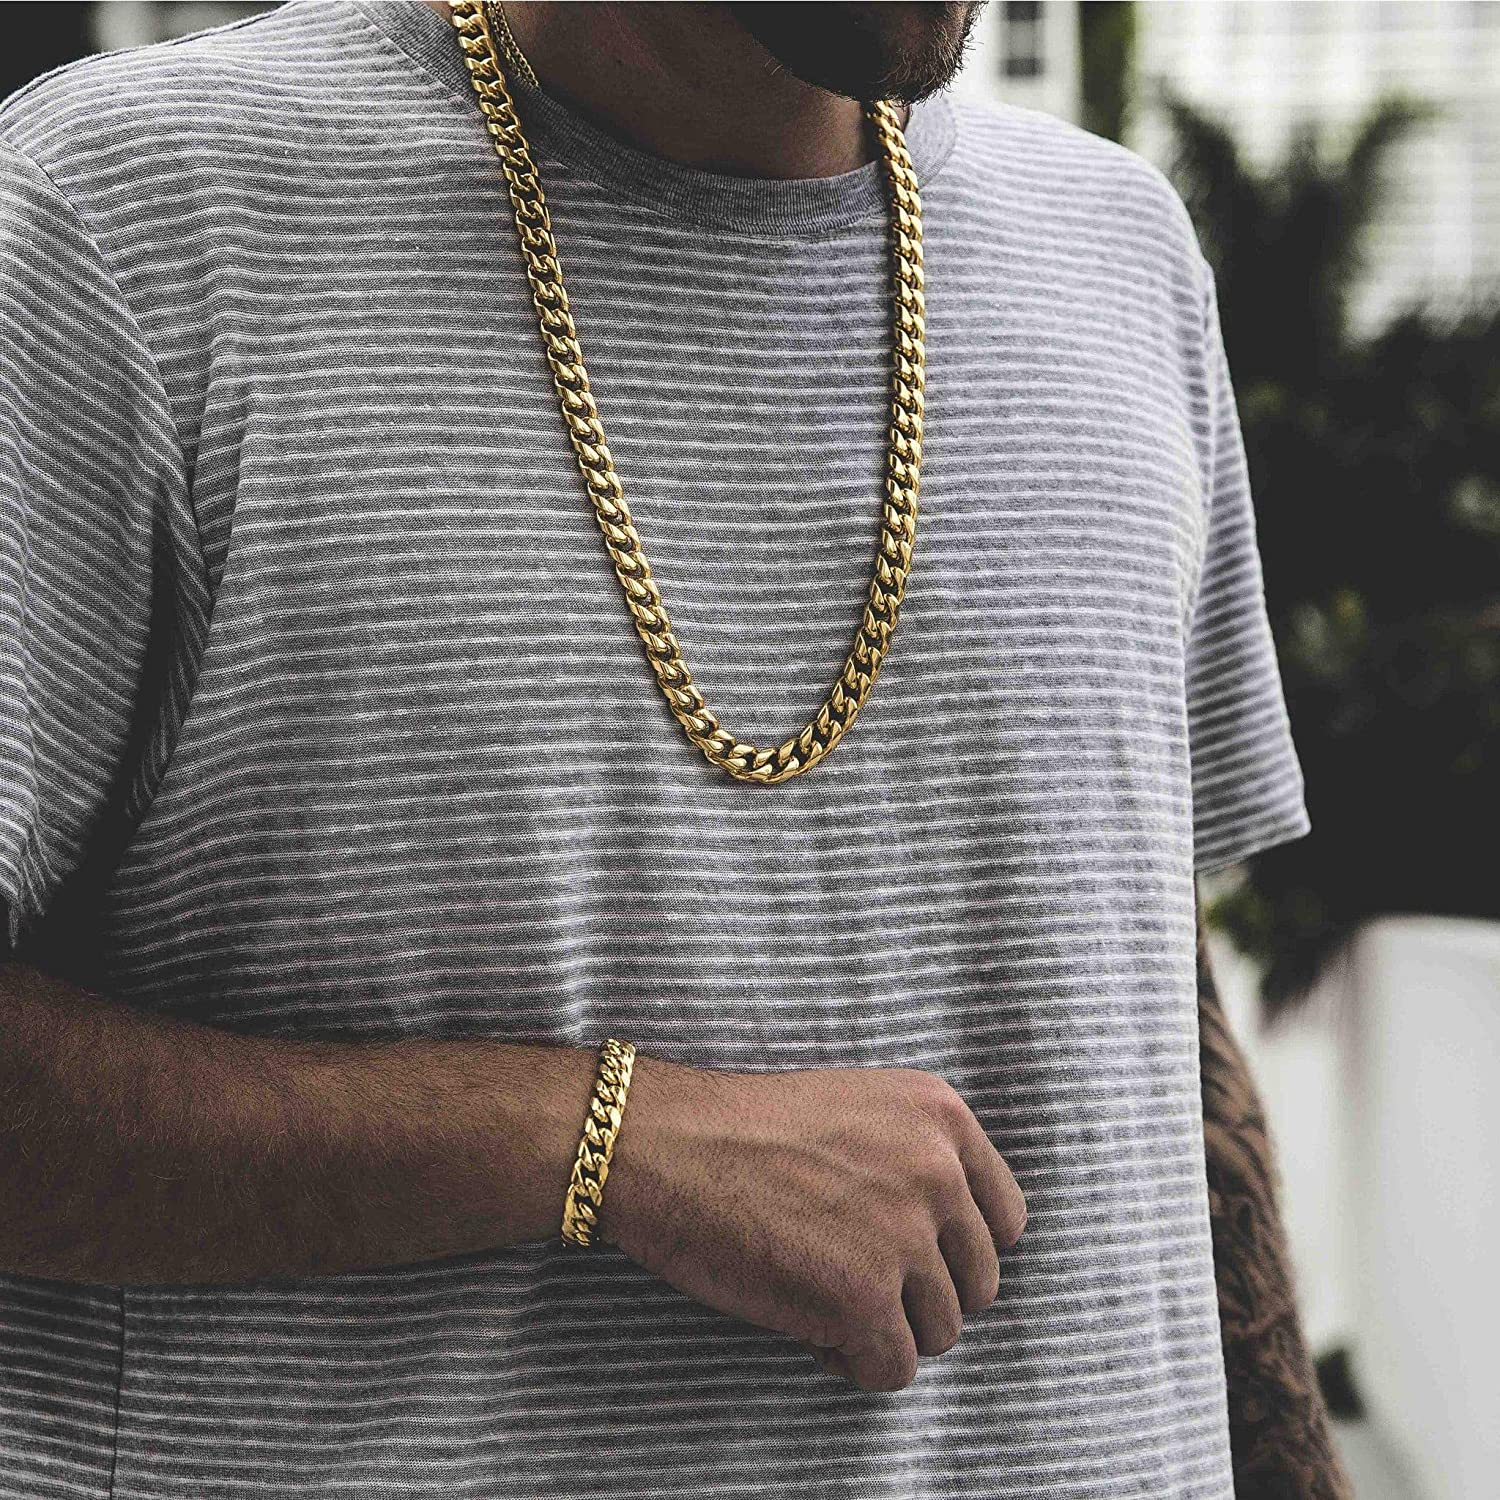 14K Gold//White Gold Plated Stainless Steel Cuban Link Choker Necklace 8mm,10mm,12mm,14mm,16mm TRIPOD JEWELRY Heavy Thick Mens Hip Hop Miami Cuban Link Chain//Bracelet